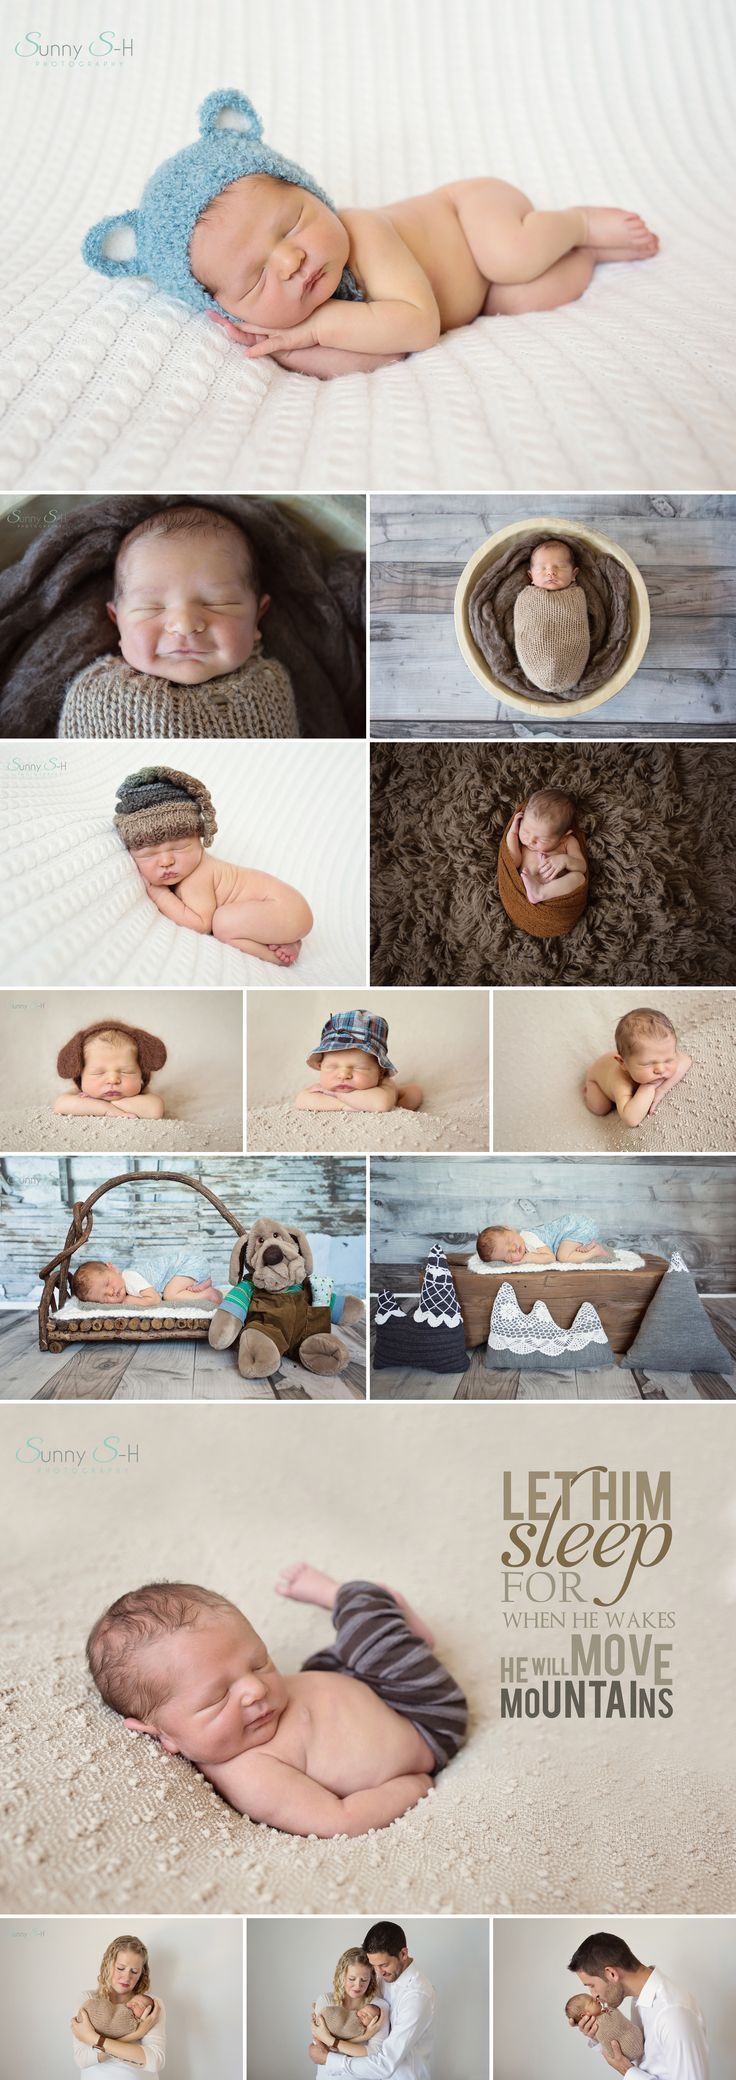 7 day old Thatcher and his studio newborn photo shoot. Sunny S-H Photography